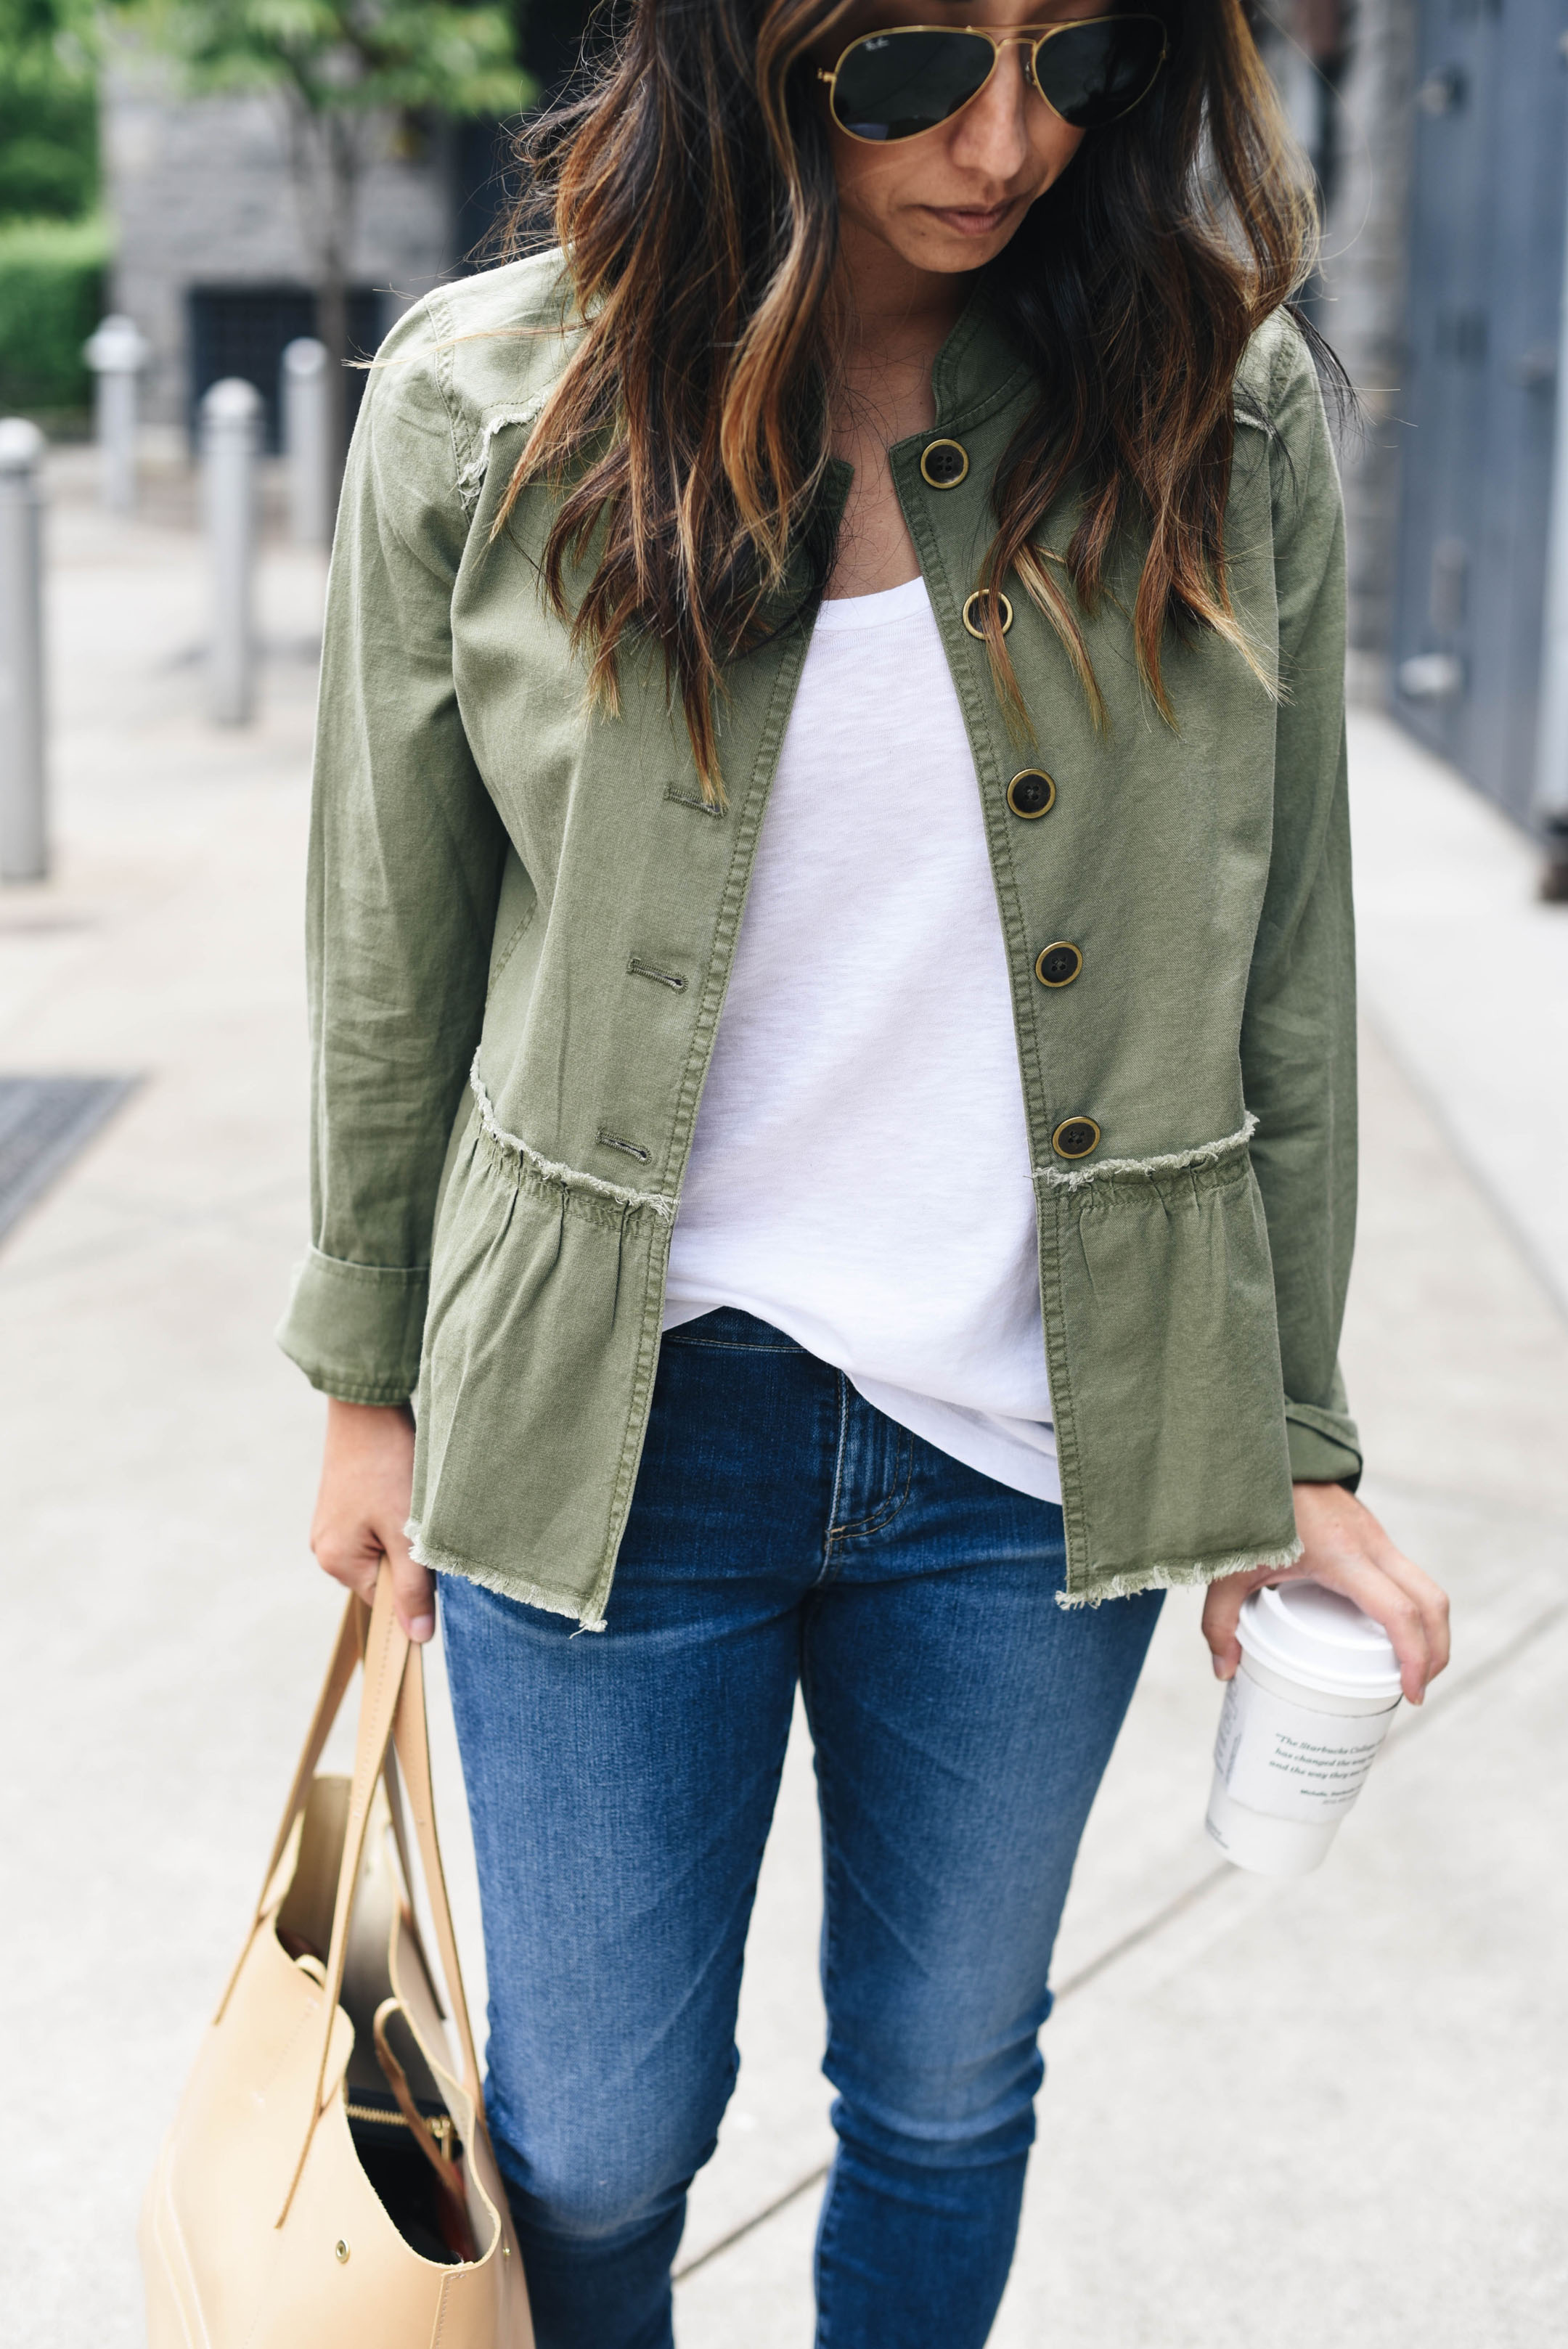 16 Summer to Fall Transitional Jackets You Need From the Nordstrom Anniversary Sale